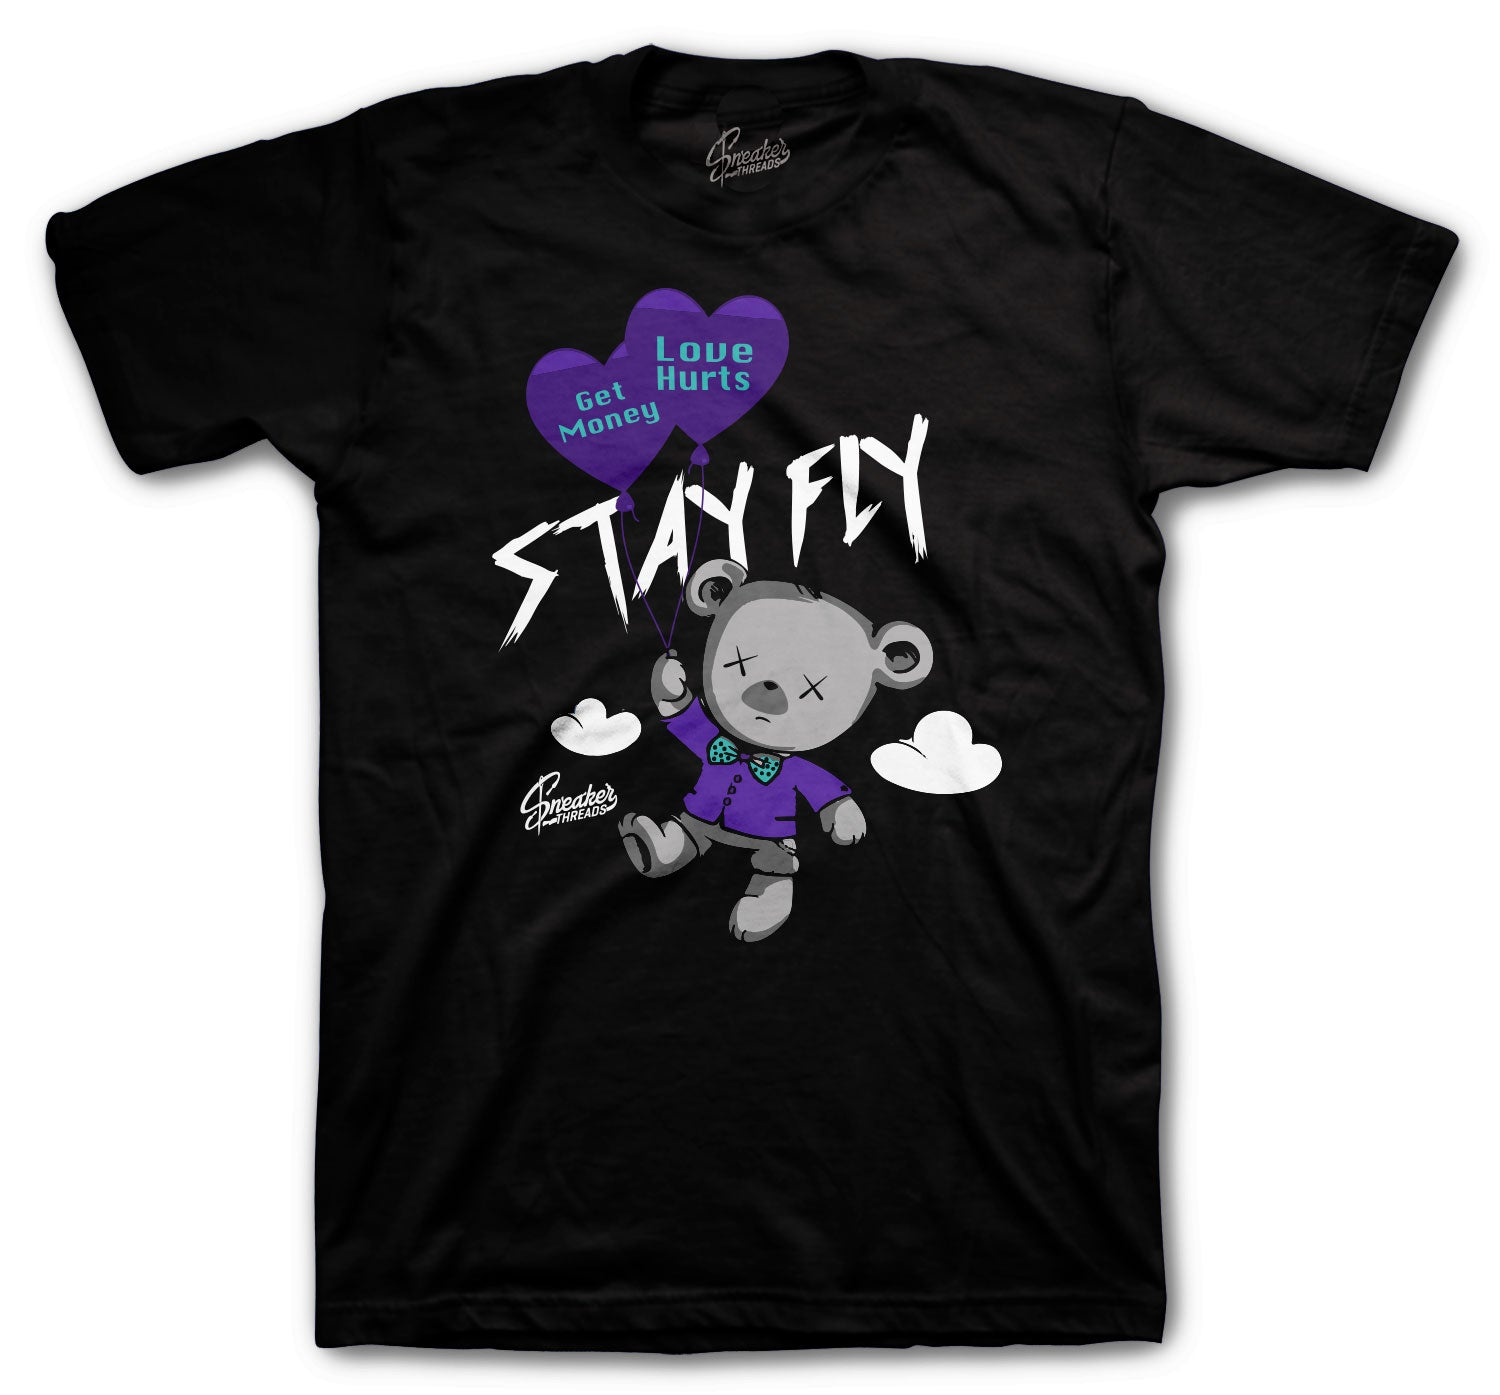 black t shirts for men designed to match the Jordan 5 purple grape sneaker collection